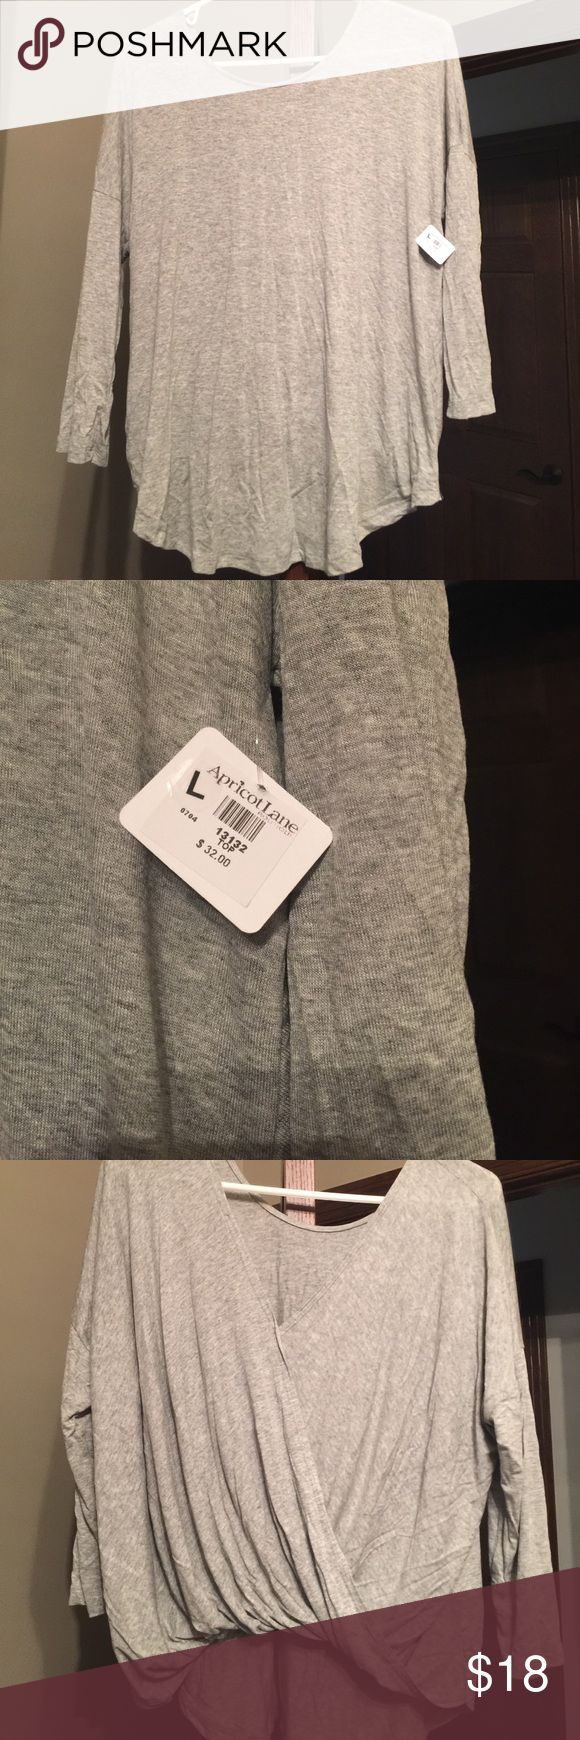 Apricot lane brand new grey pullover shirt Light soft material brand new with tags, back is super cute and can be worn as the front too so two shirts in one! Tops Tees - Long Sleeve